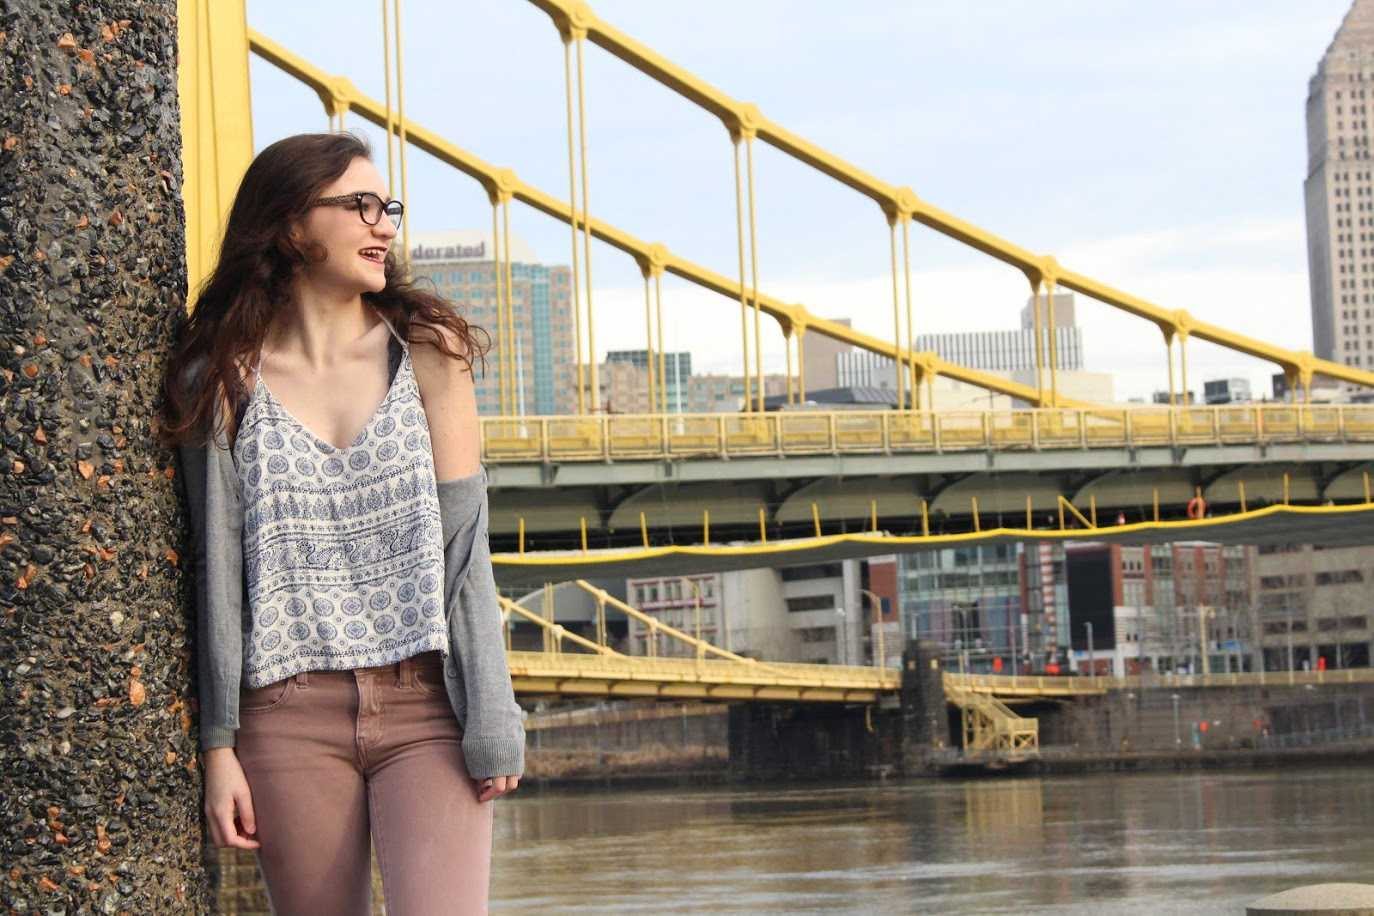 Sarah Connor enjoys being a Pittsburgh native while posing on the North Shore in front of iconic Pittsburgh bridges. (Photo courtesy of Chloe Yoder)